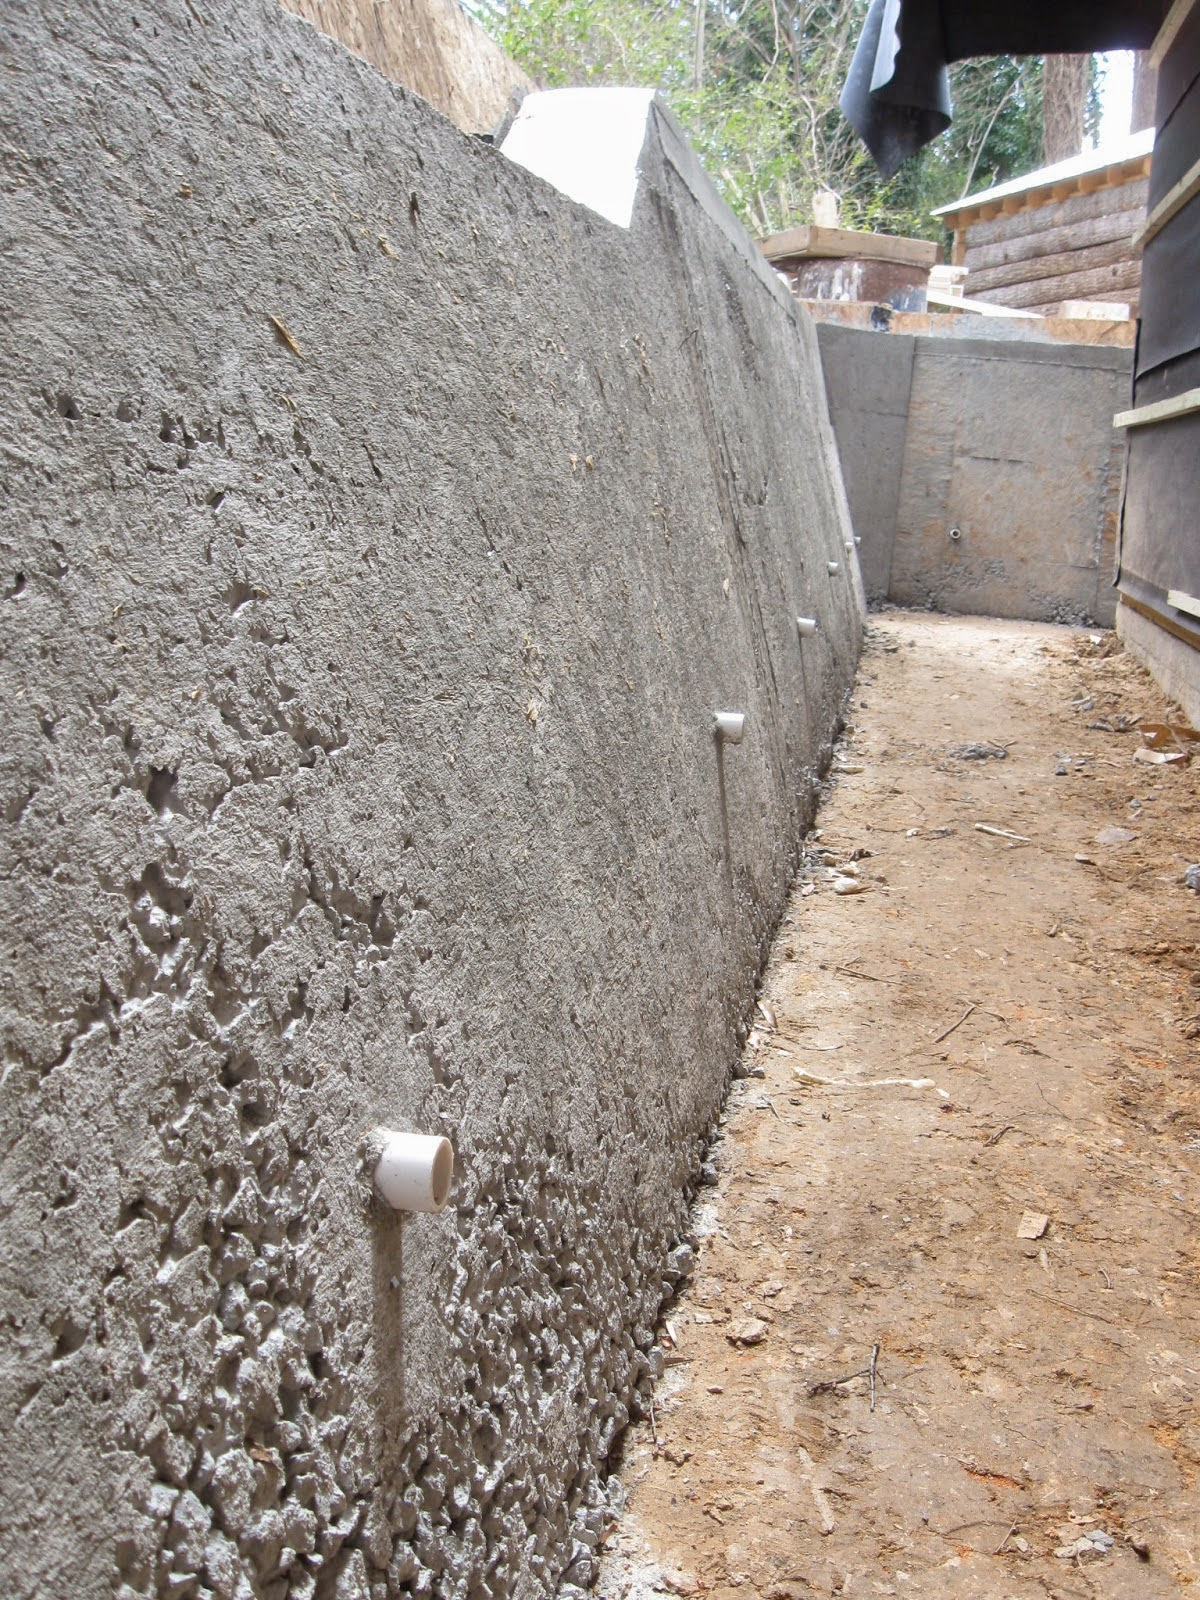 Reinforce The Front Of Wall This Can Be Done By Forming Or Pneumatically Placing Concrete To Thicken Base And Tapering A Height Where Added